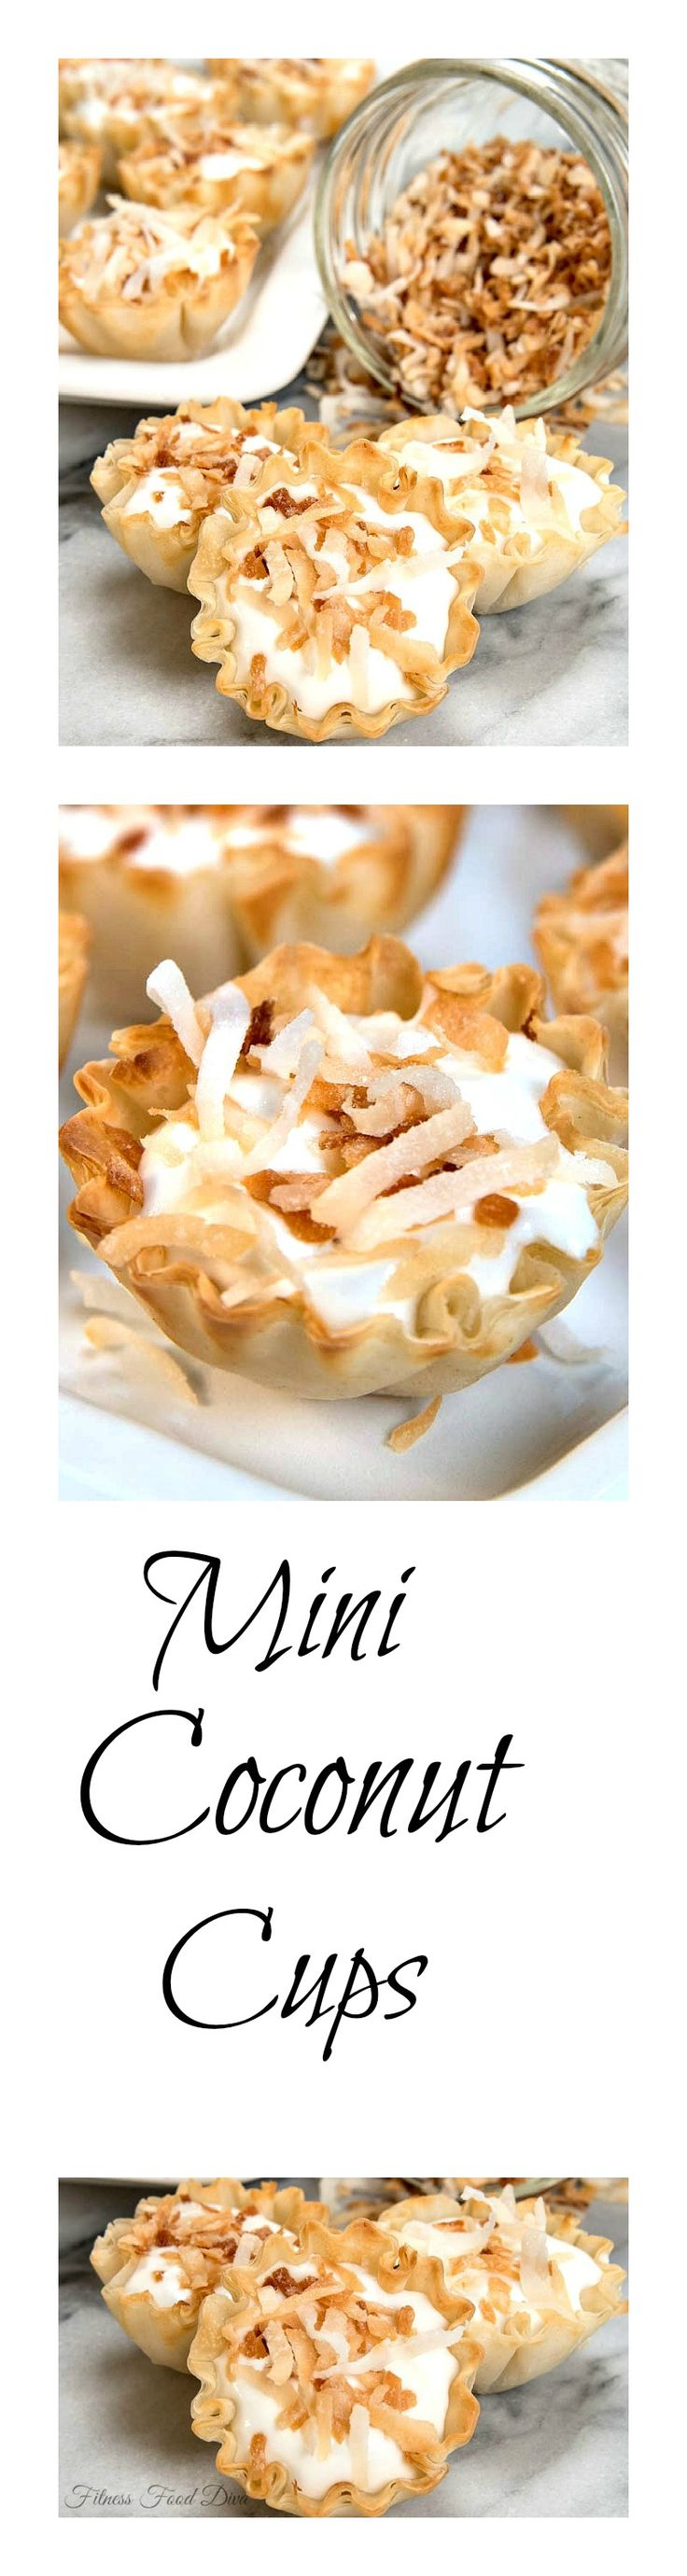 """MINI COCONUT CUPS are about the cutest little desserts ever. They are so light and creamy with a touch of crunch from the lightly toasted coconut on top. Mini Coconut Cups are so yummy you will go """"coco-nuts!"""""""